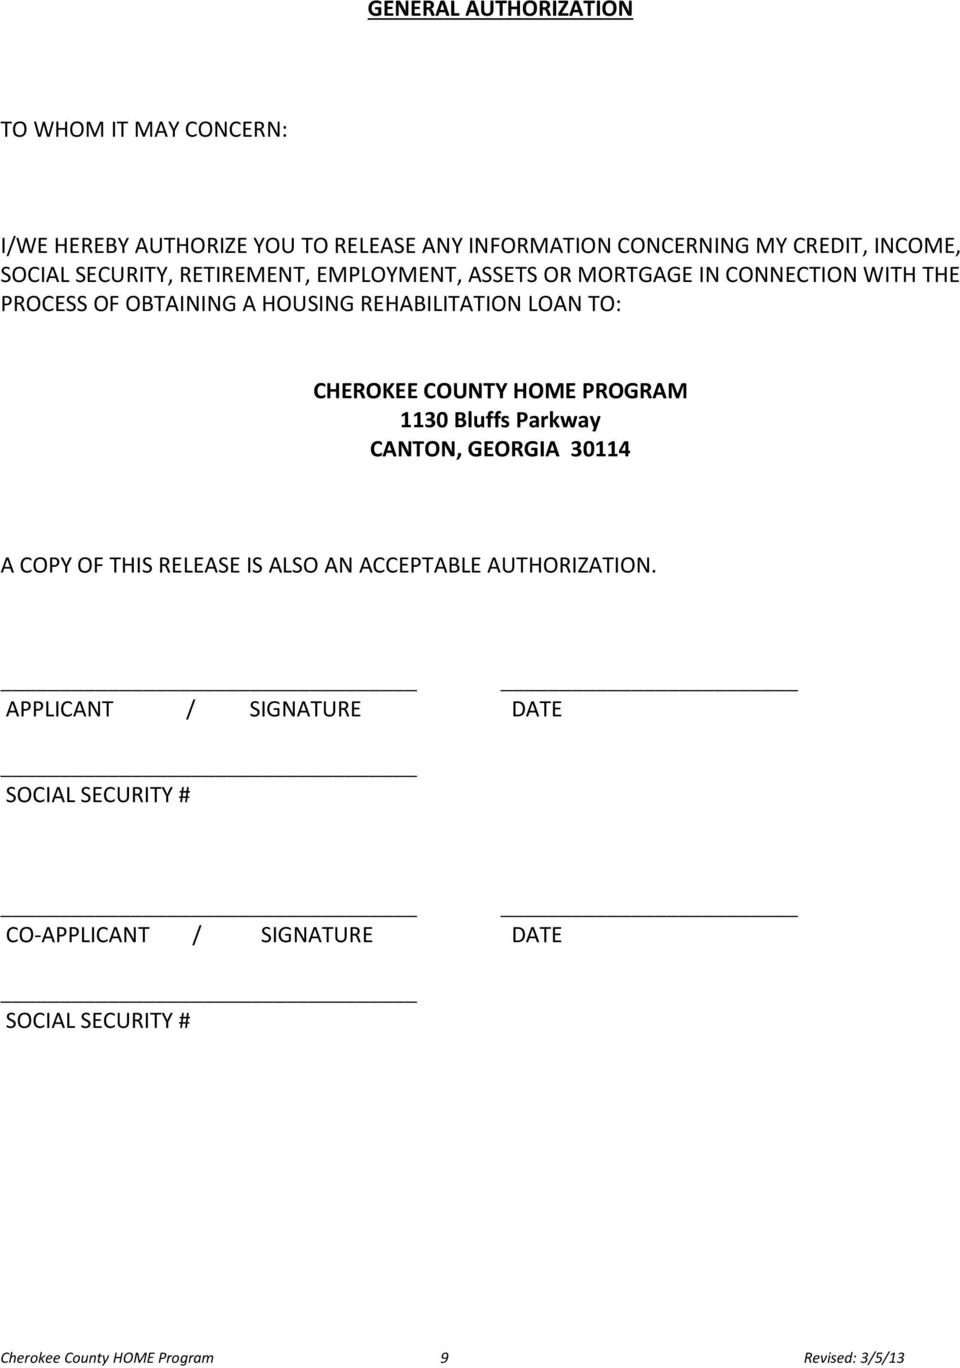 TO: CHEROKEE COUNTY HOME PROGRAM 1130 Bluffs Parkway CANTON, GEORGIA 30114 A COPY OF THIS RELEASE IS ALSO AN ACCEPTABLE AUTHORIZATION.